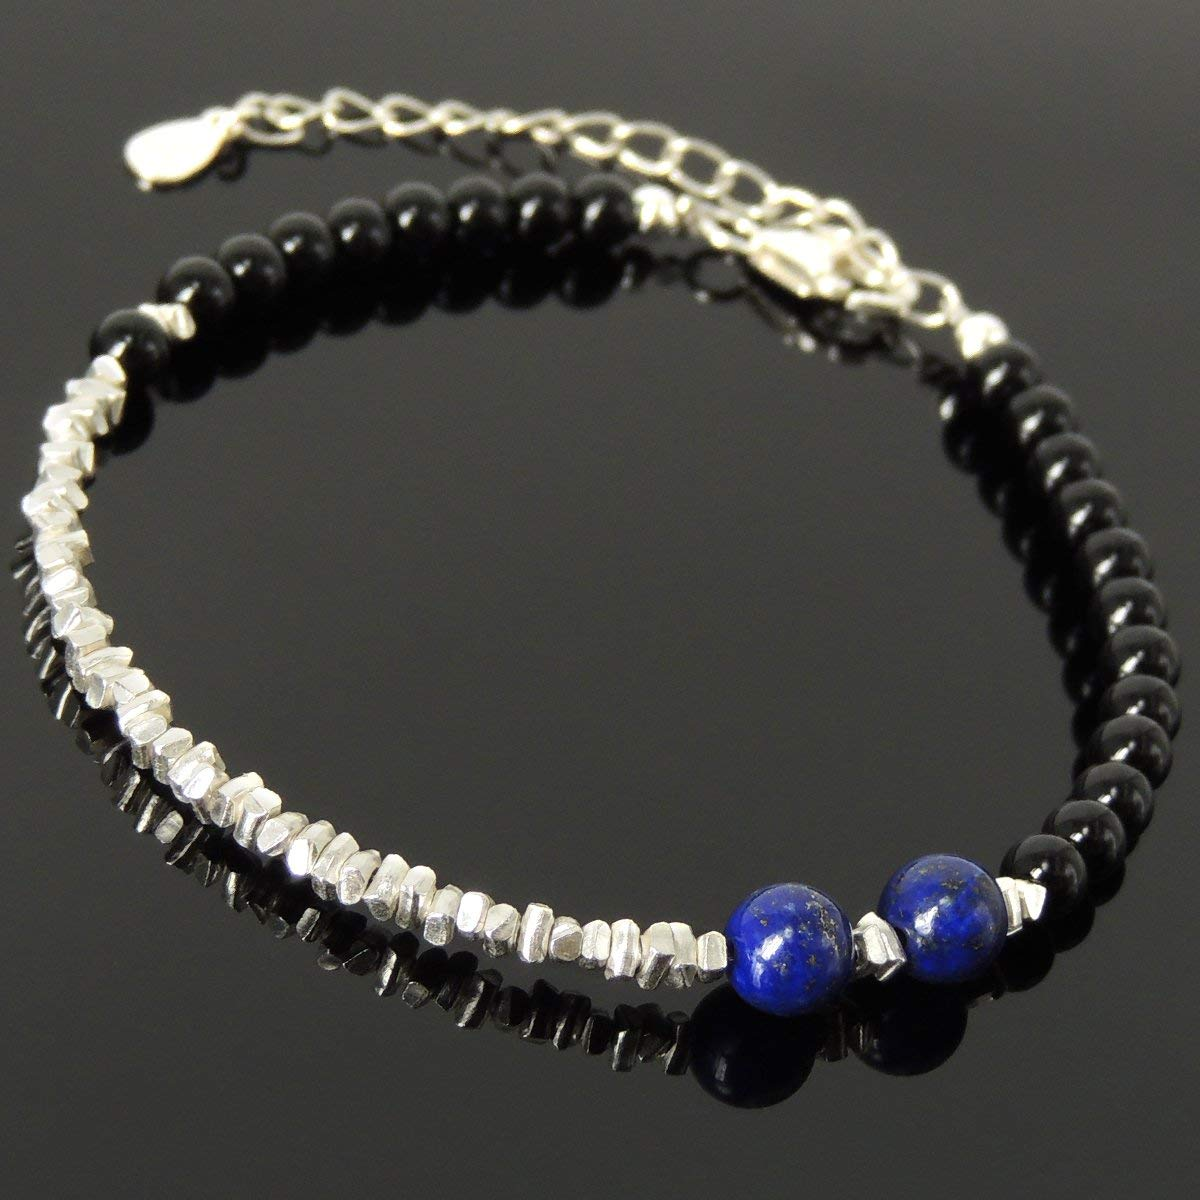 Handmade Healing Bracelet Men & Women Casual Wear, Festival Jewelry with Bright Black Onyx, Lapis Lazuli & S925 Sterling Silver Chain, Clasp, Nugget Spacer Beads (Non-plated)